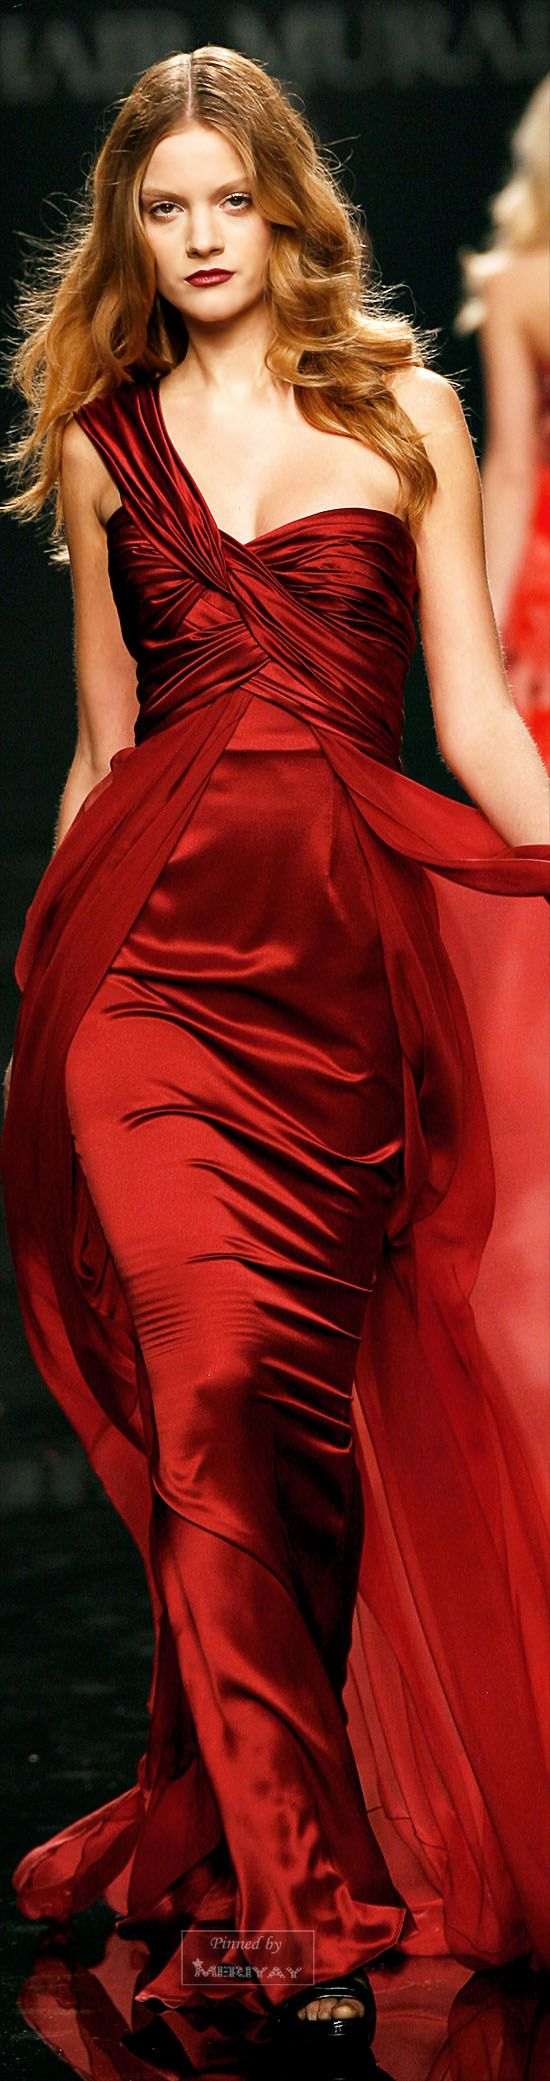 luscious deep red satin gown by Zuhair Murad - Fall Winter 2009/2010 - Istg everything Murad designs is the best thing i've ever seen. every single one of h